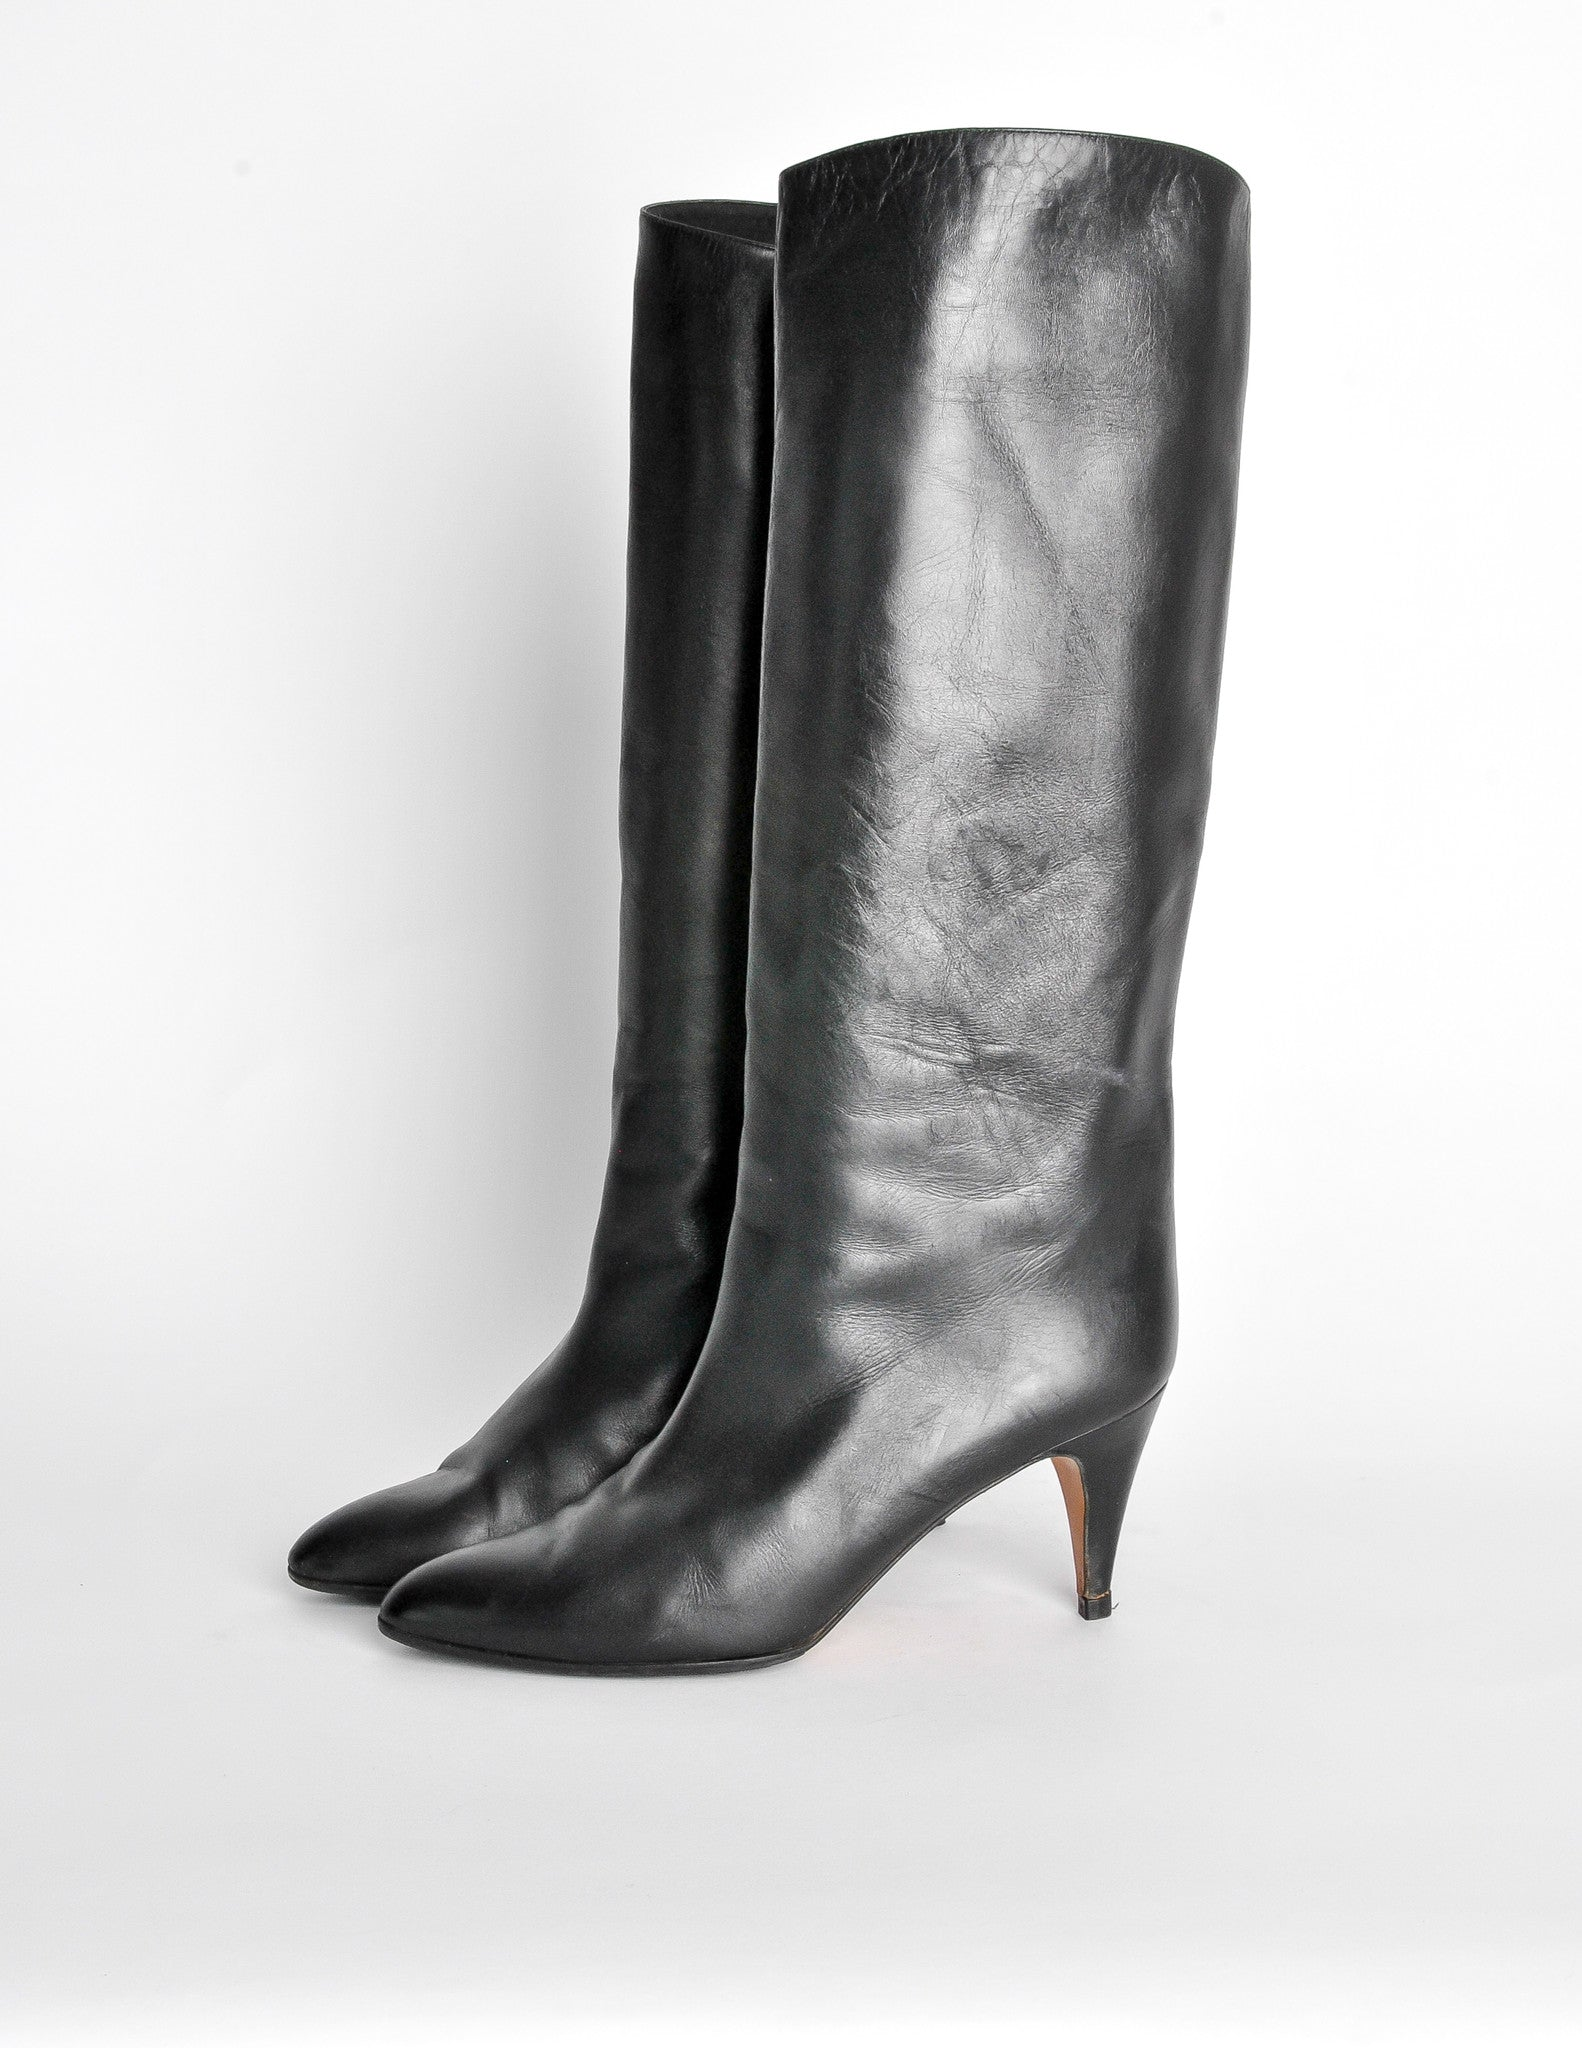 eebdc12540a Garolini Vintage Black Leather Knee High Boots - Amarcord Vintage Fashion -  2